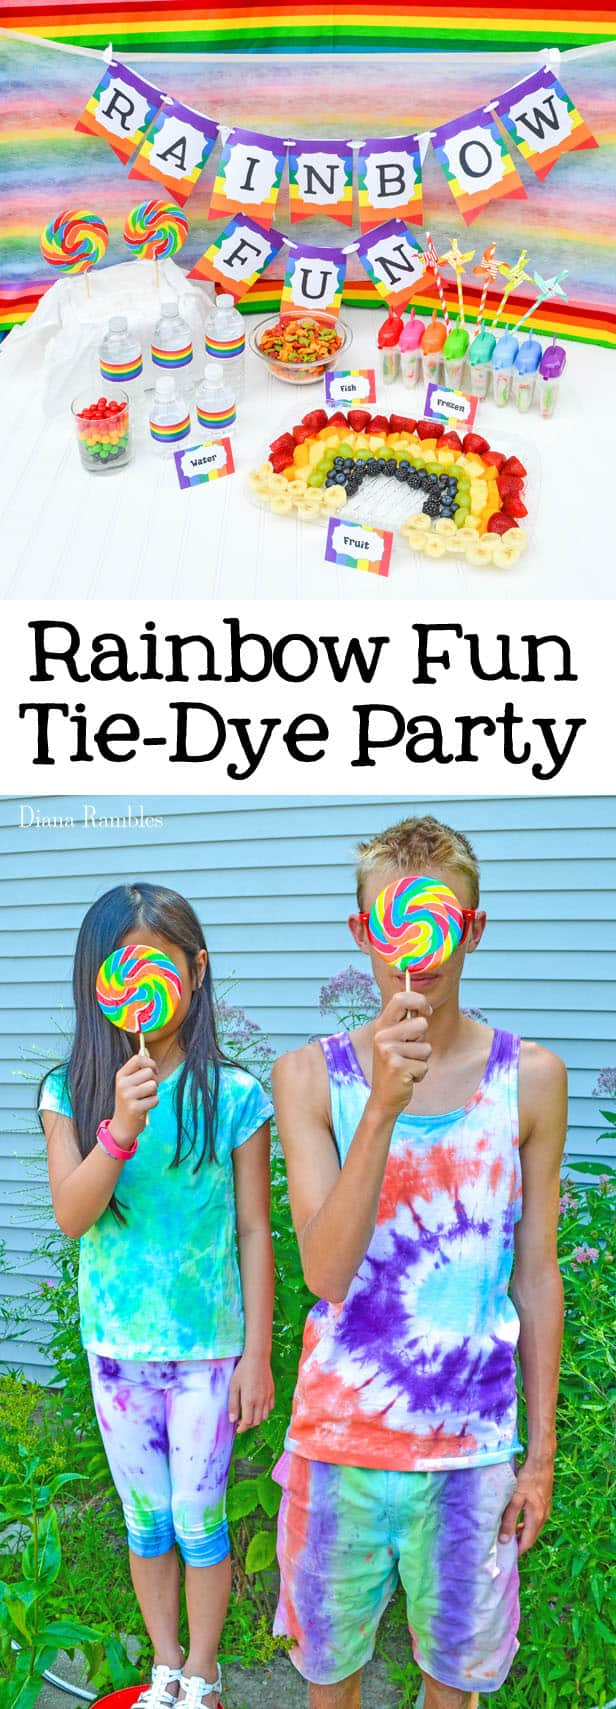 Rainbow Fun Tie-Dye Party with Free Printables - Need a unique party idea for you and old alike? Check out this rainbow fun tie-dye party. Have a colorful time with the free download printables.